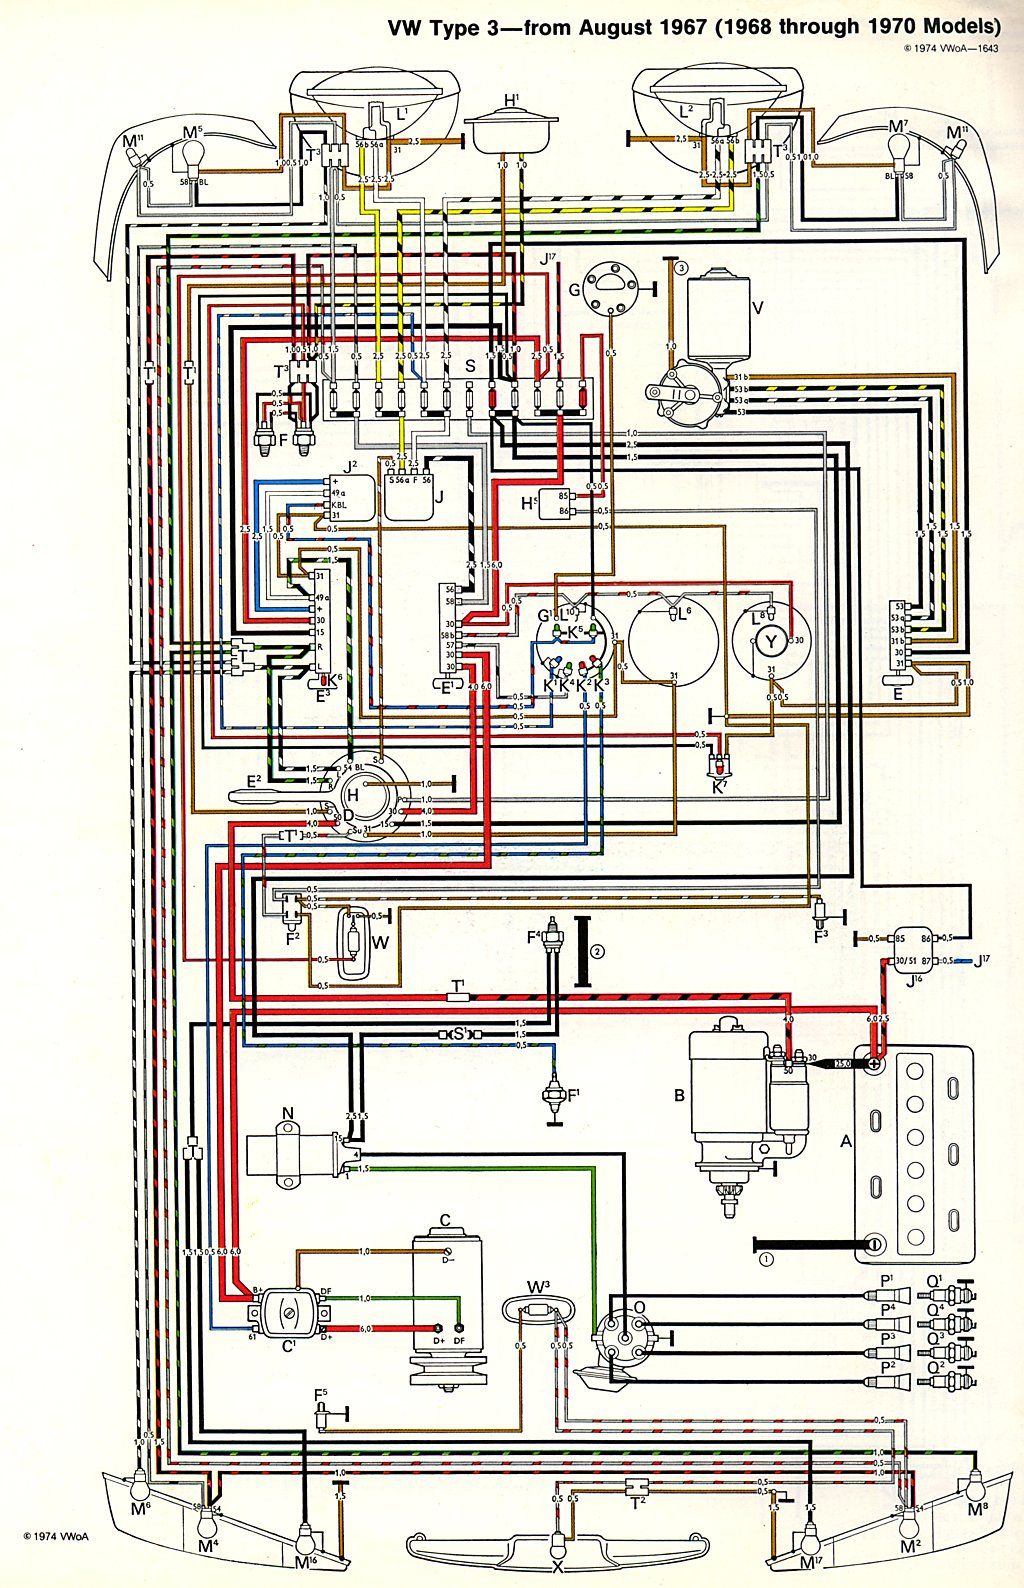 DIAGRAM] Starter Wiring Diagram 68 Vw Bug FULL Version HD Quality Vw Bug -  DIAGRAMTALK.SORAGNAWEB.ITSoragna Web